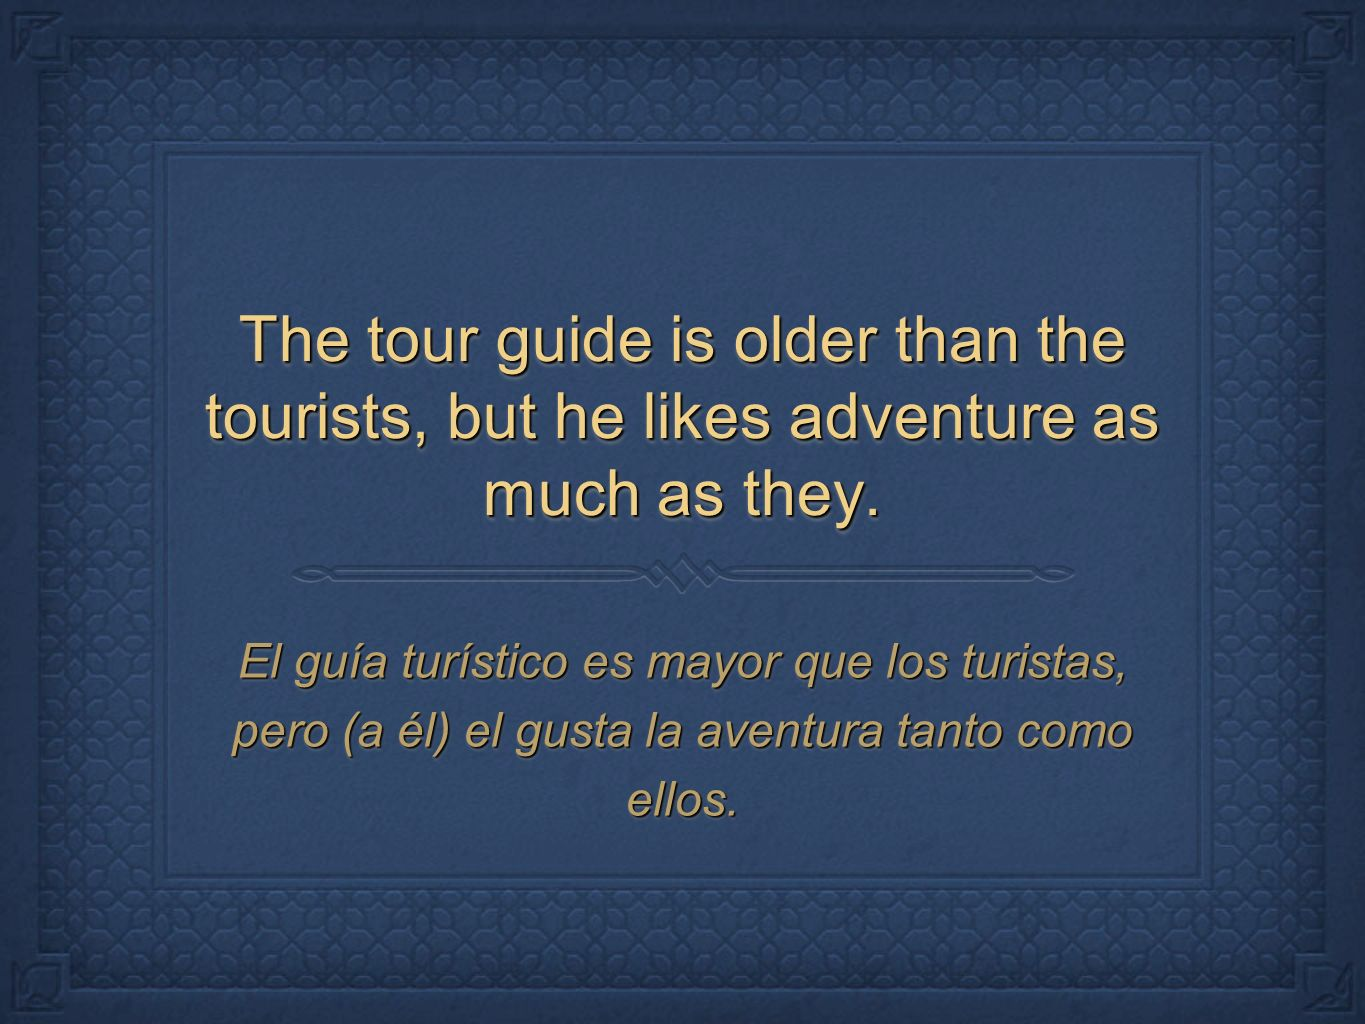 The tour guide is older than the tourists, but he likes adventure as much as they.